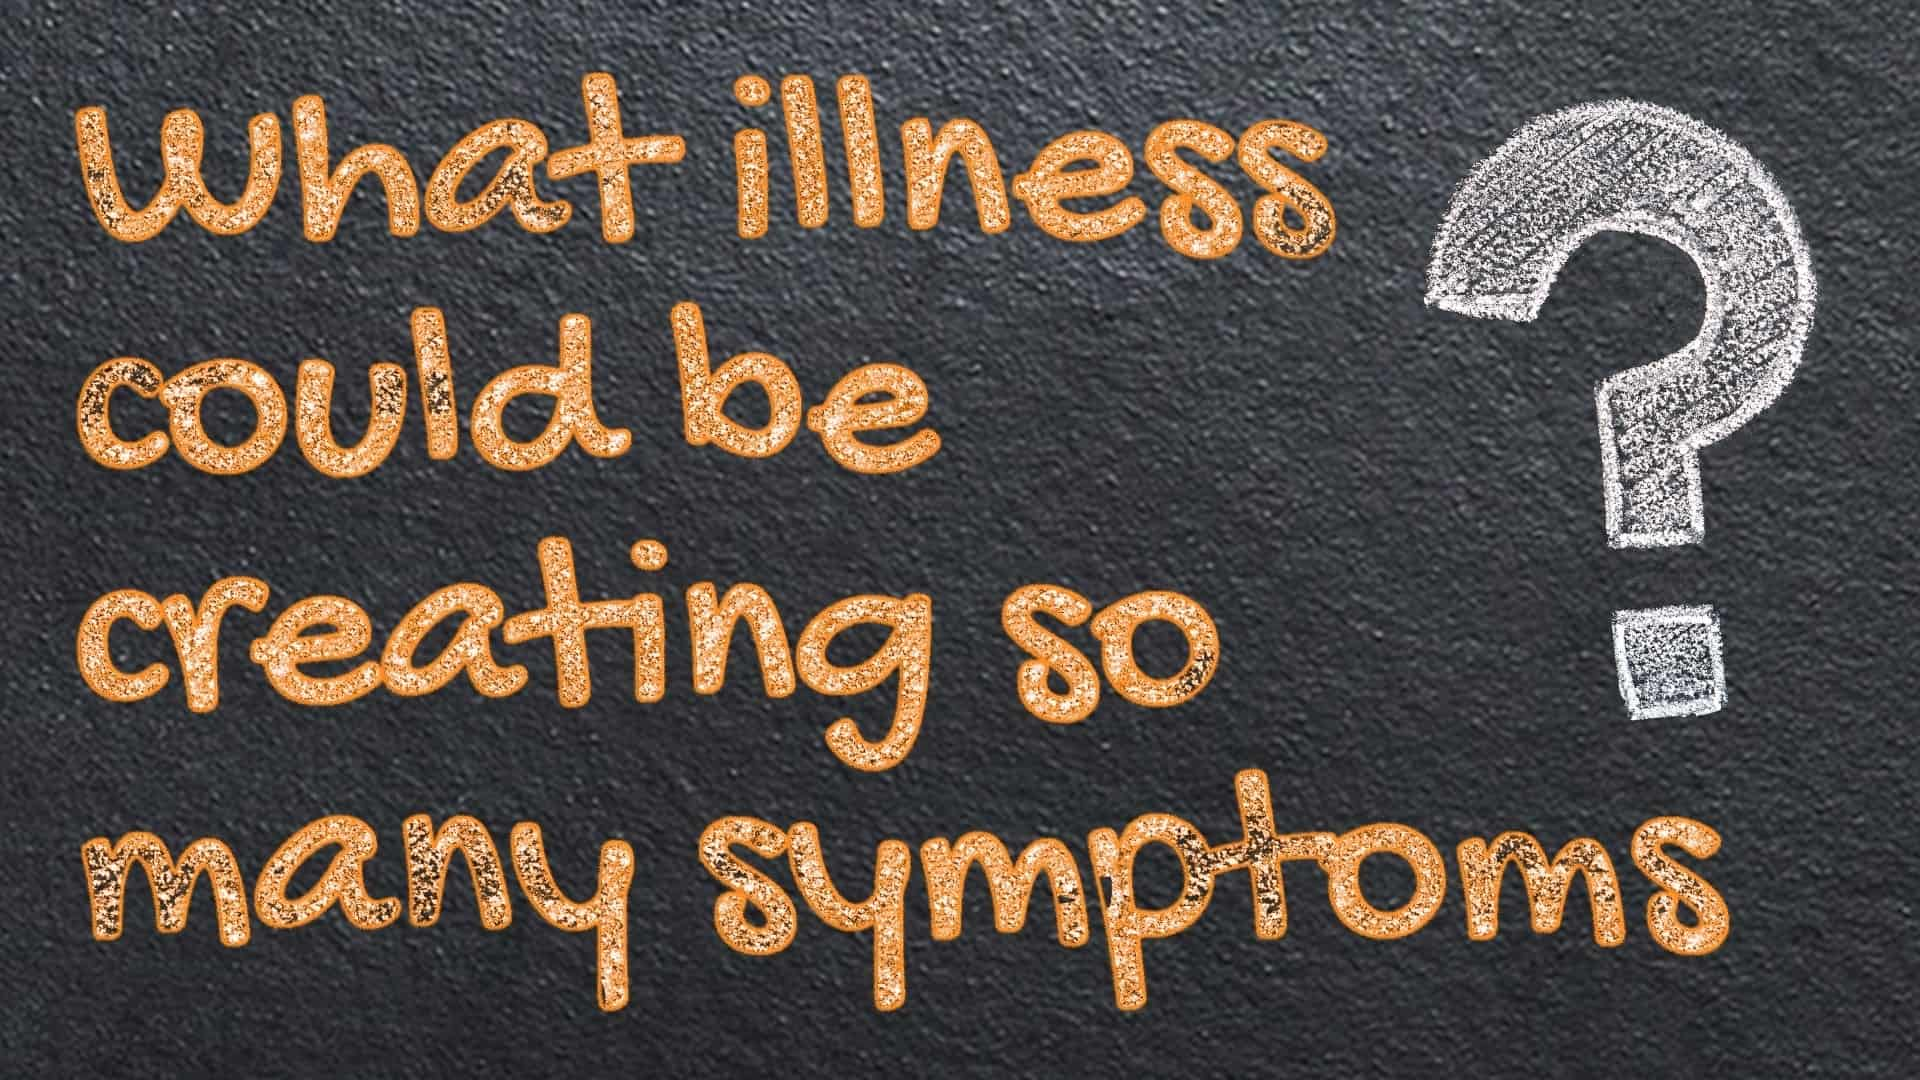 message written on blackboard saying What illness could be creating so many symptoms